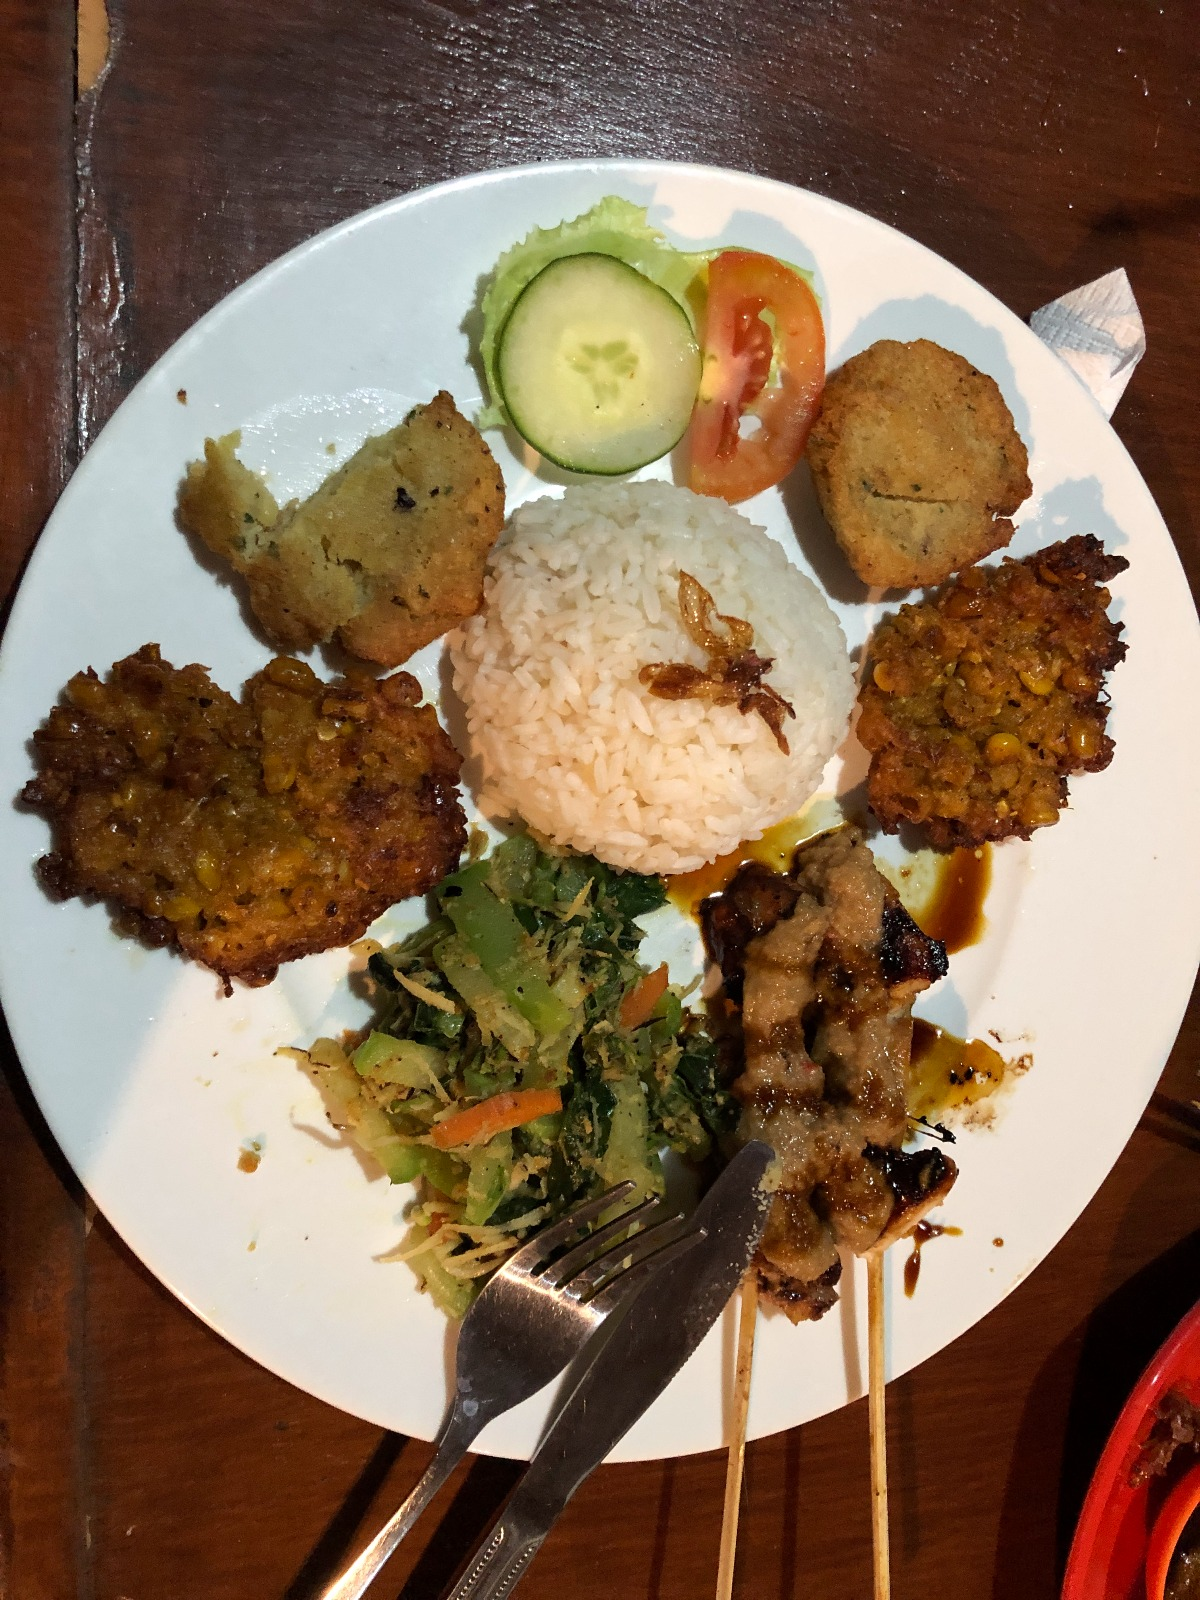 Local specialities Bali